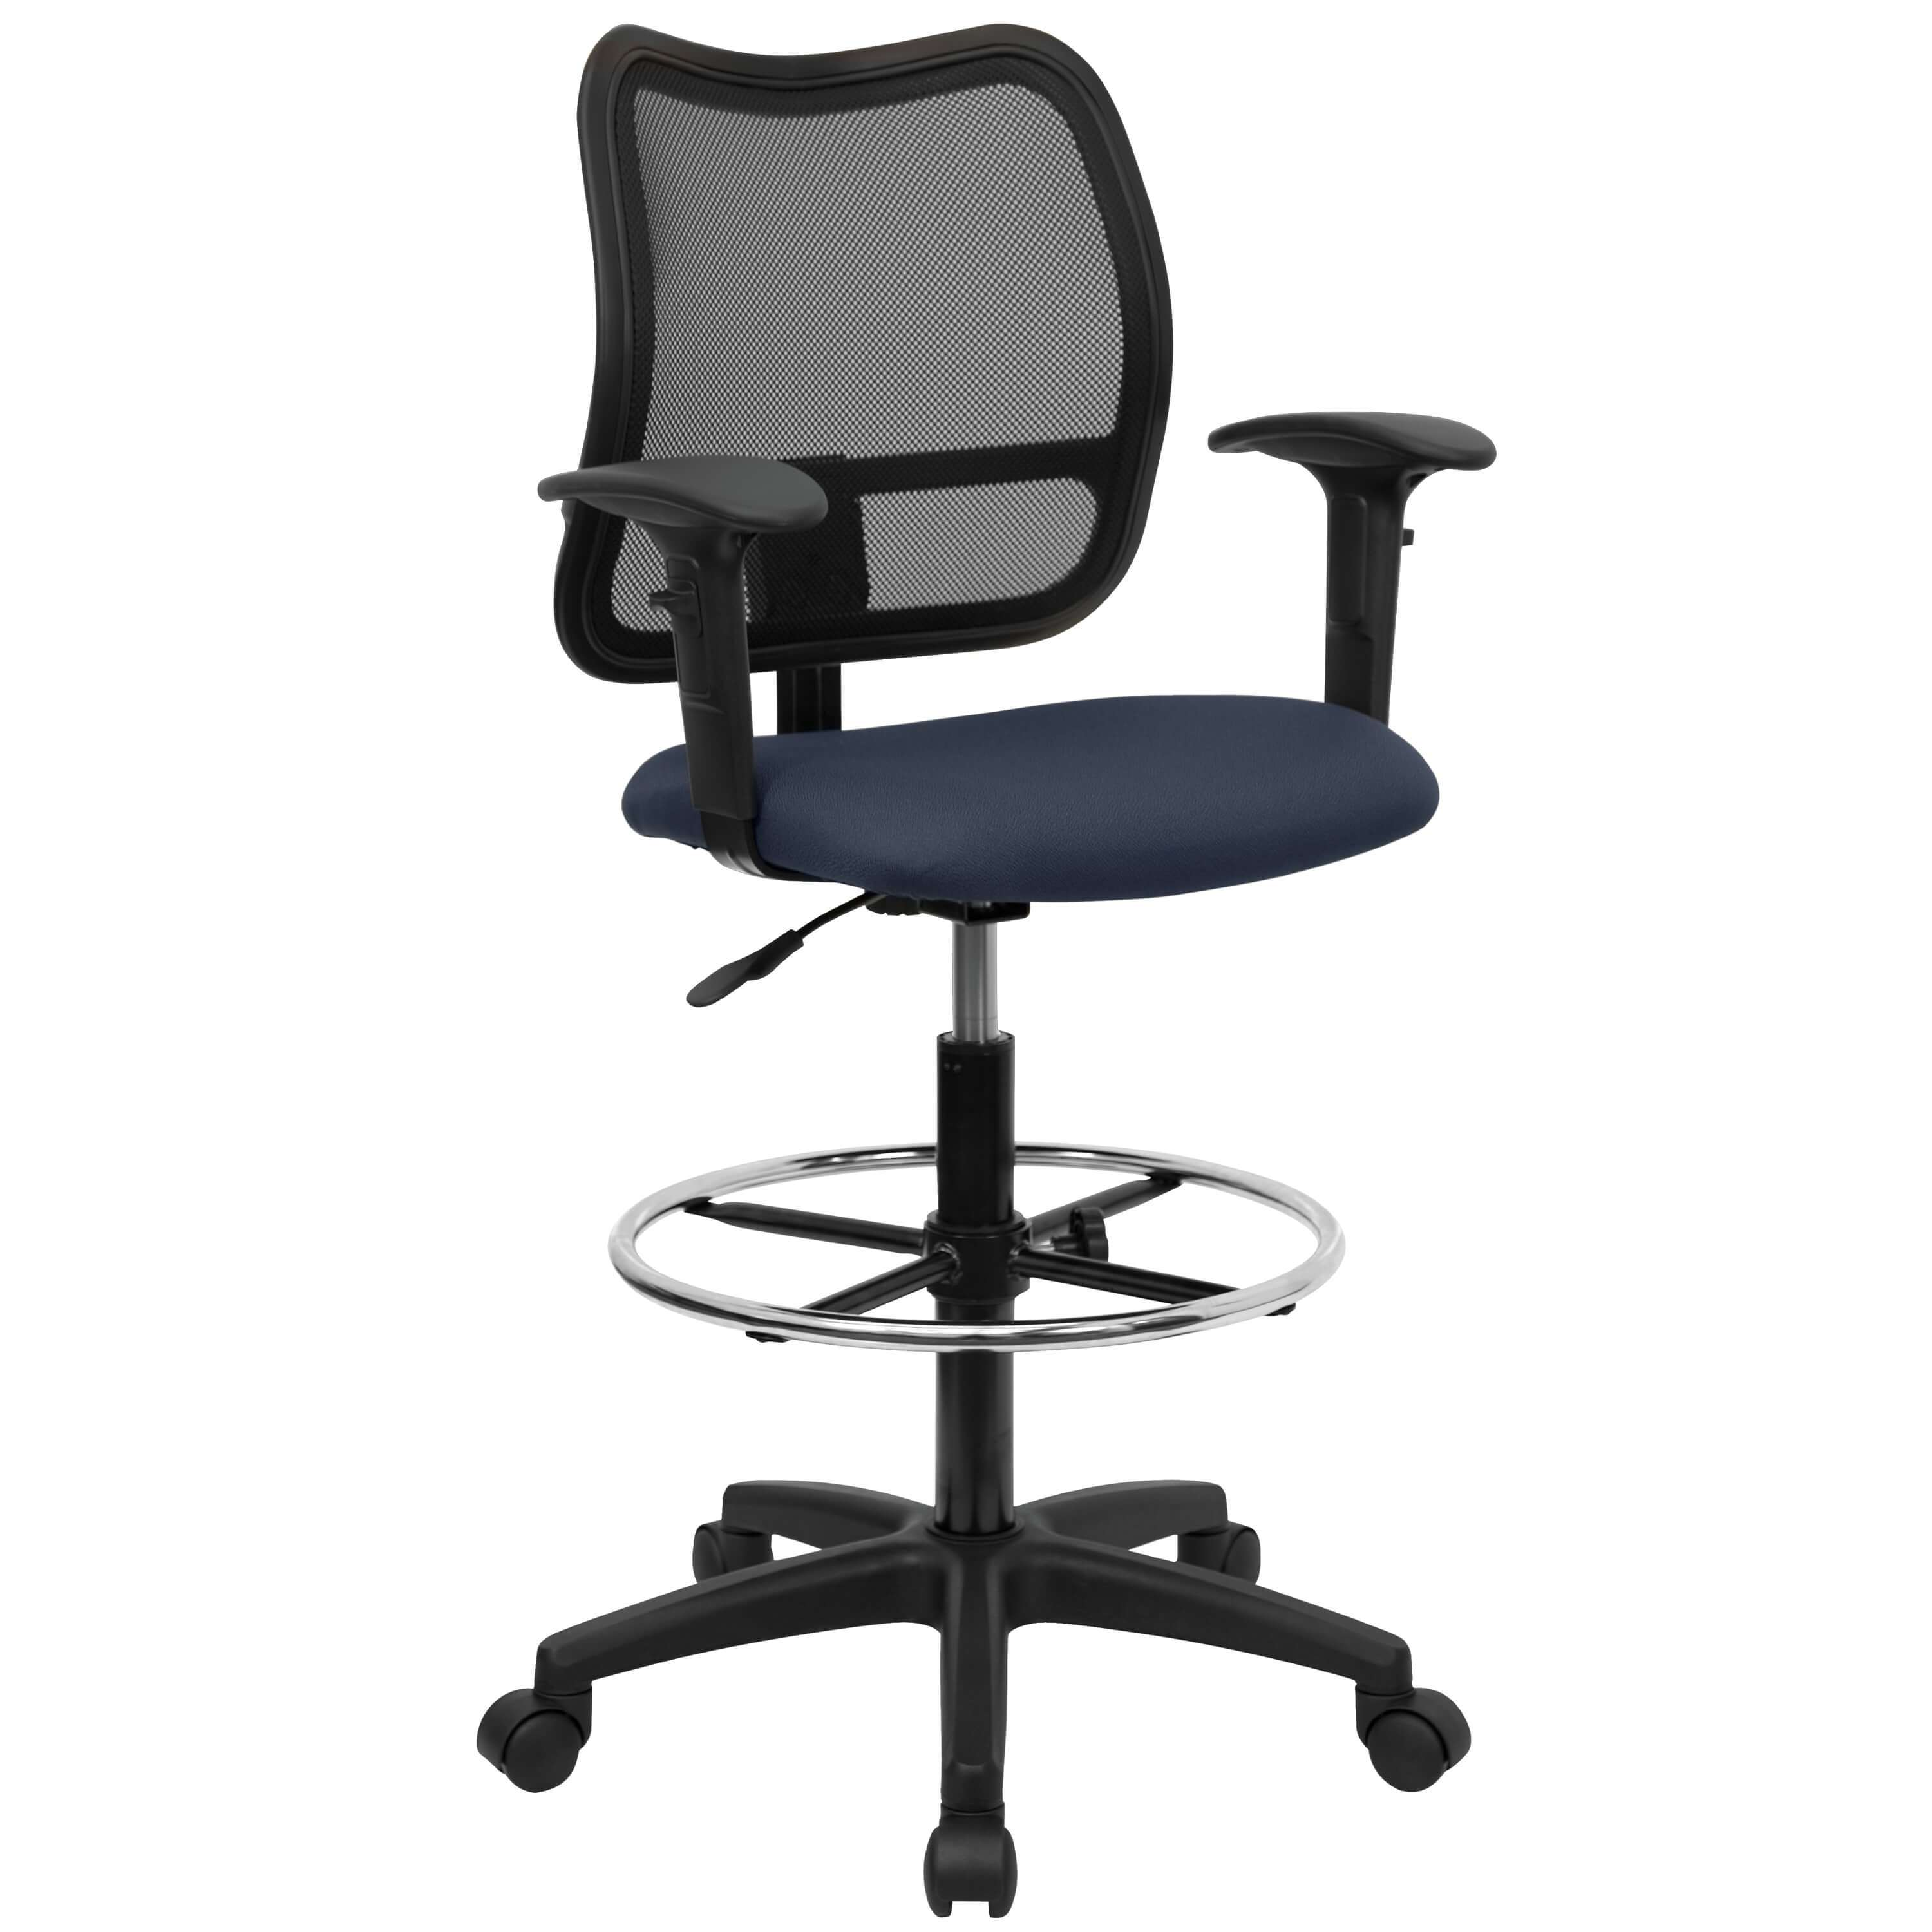 cool-office-chairs-drafting-office-chair.jpg